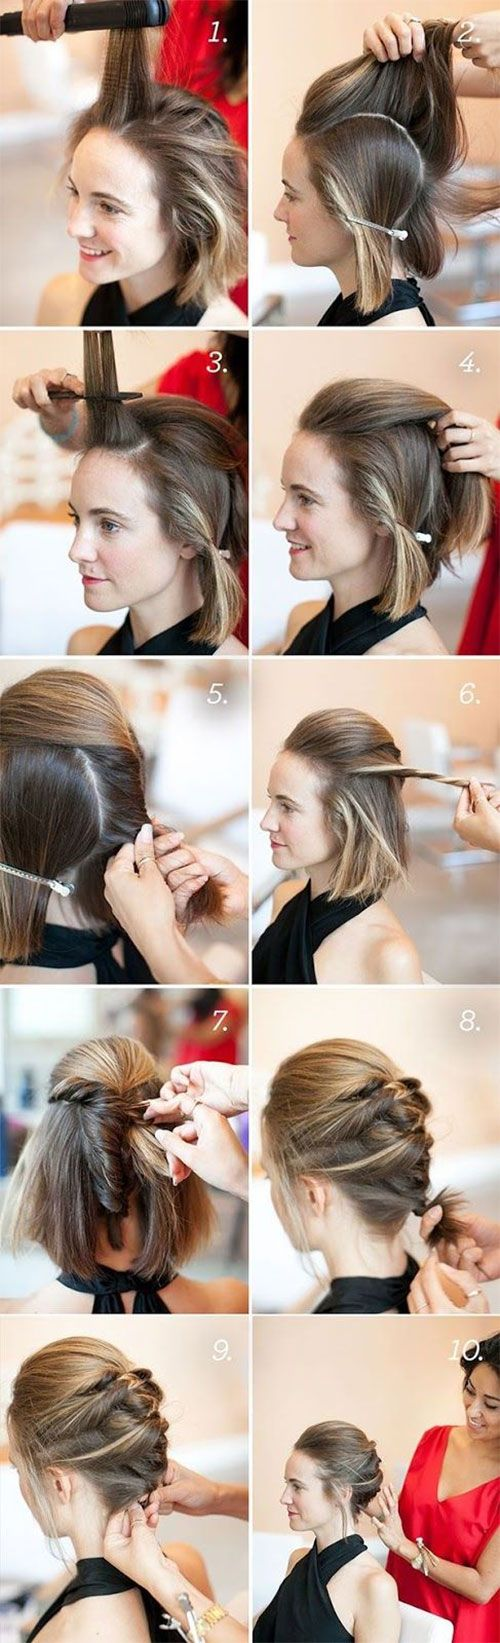 short hair updos, how to style bobs, lobs tutorials | ponytail